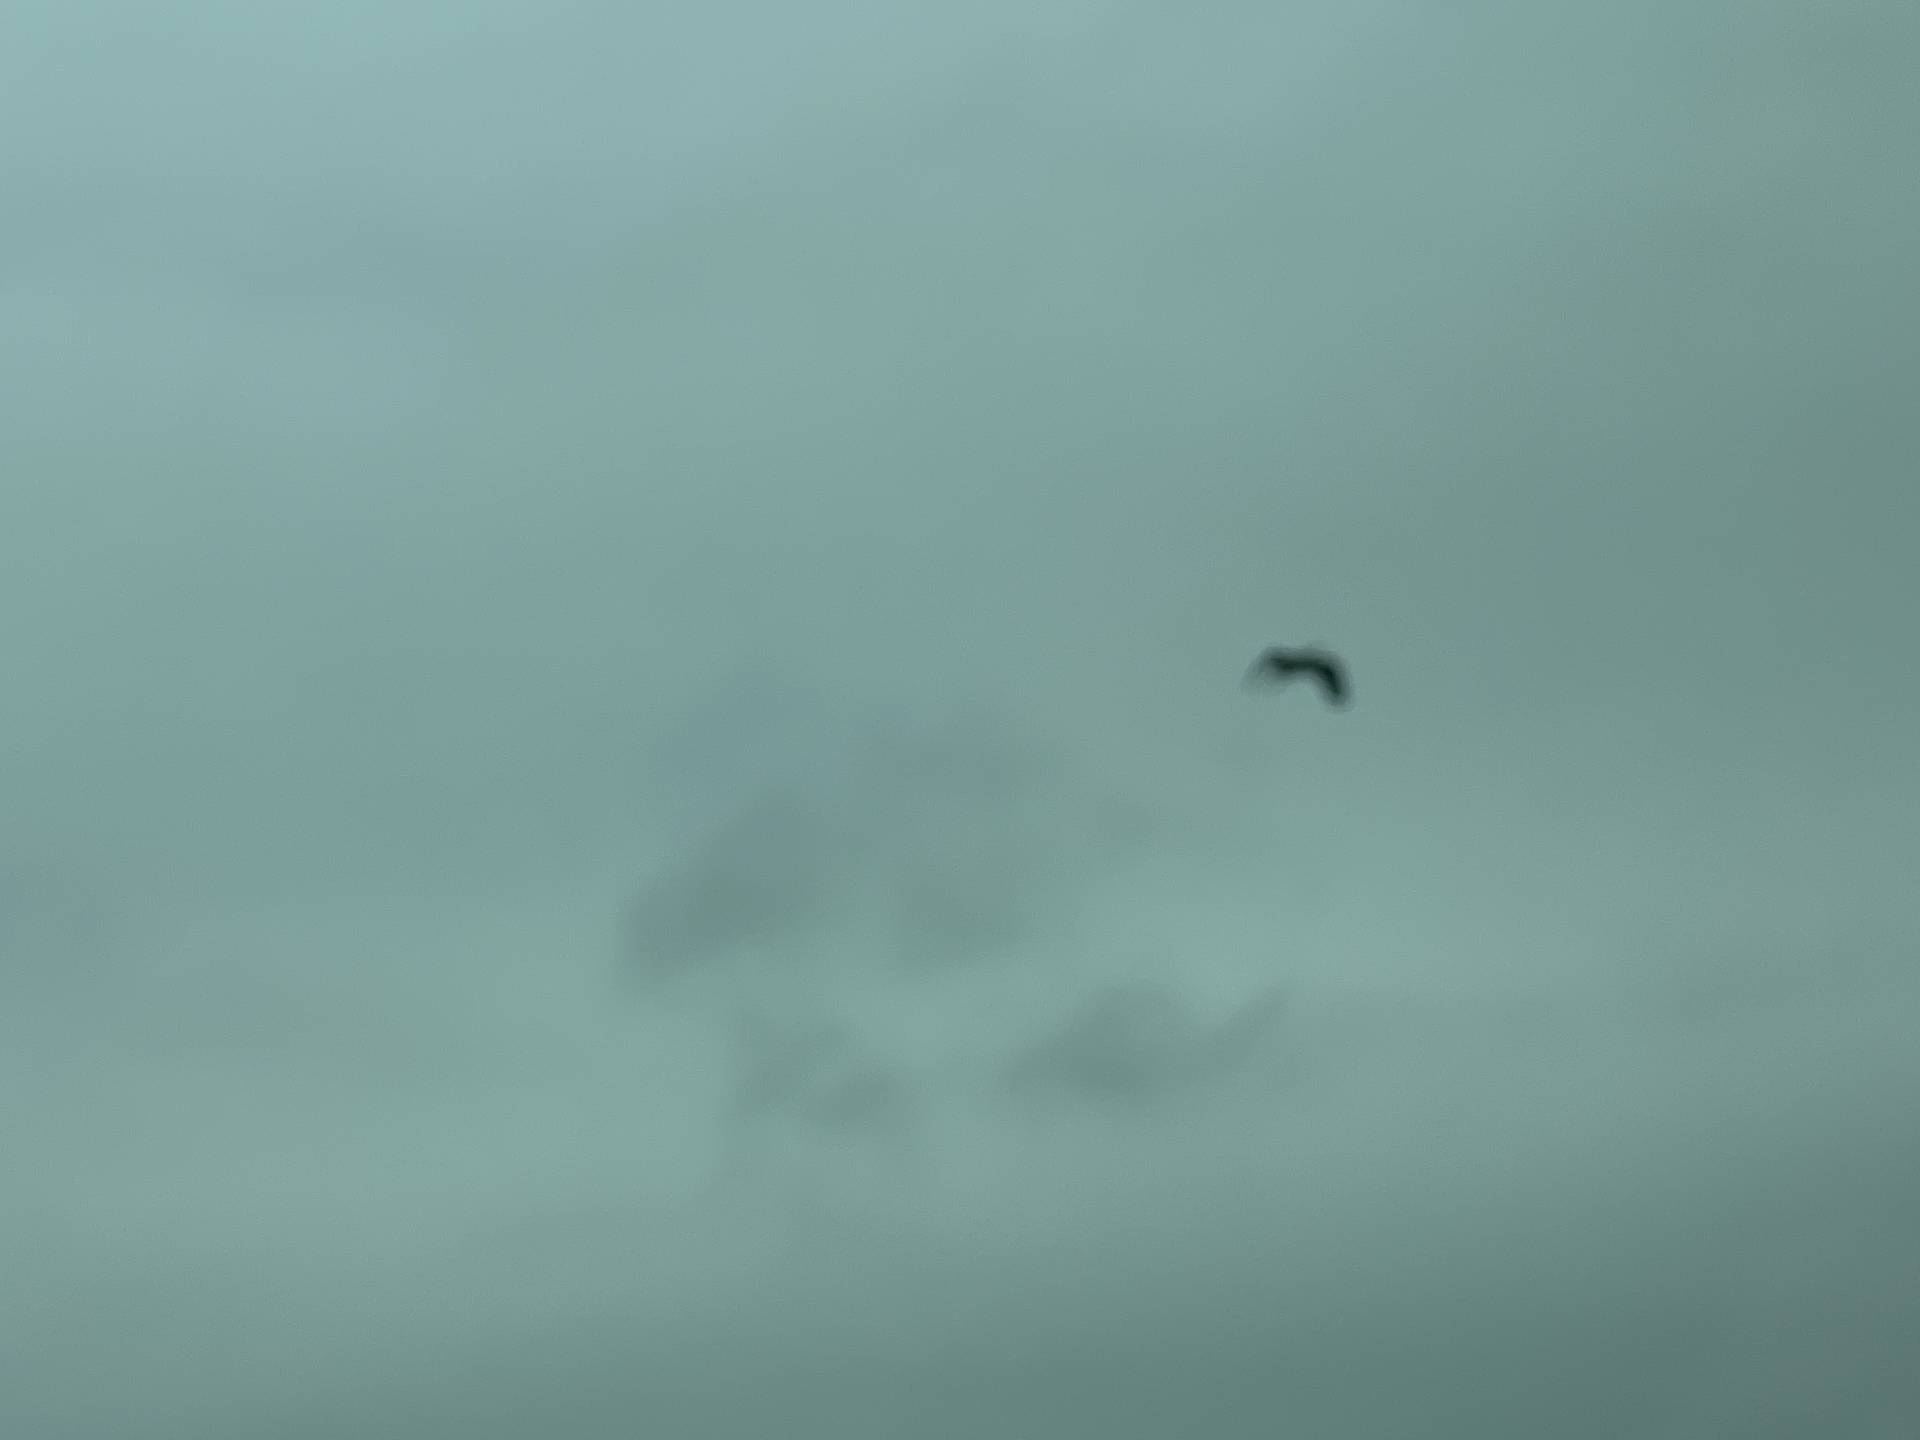 That was a great blue heron! #blurry